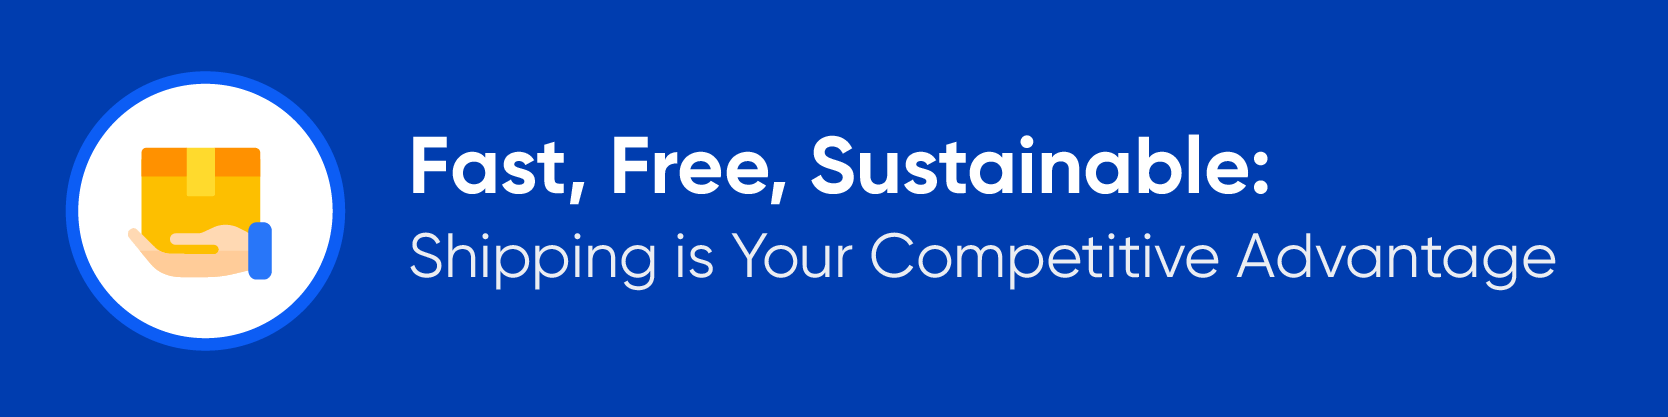 Fast, Free, Sustainable: Shipping is Your Competitive Advantage